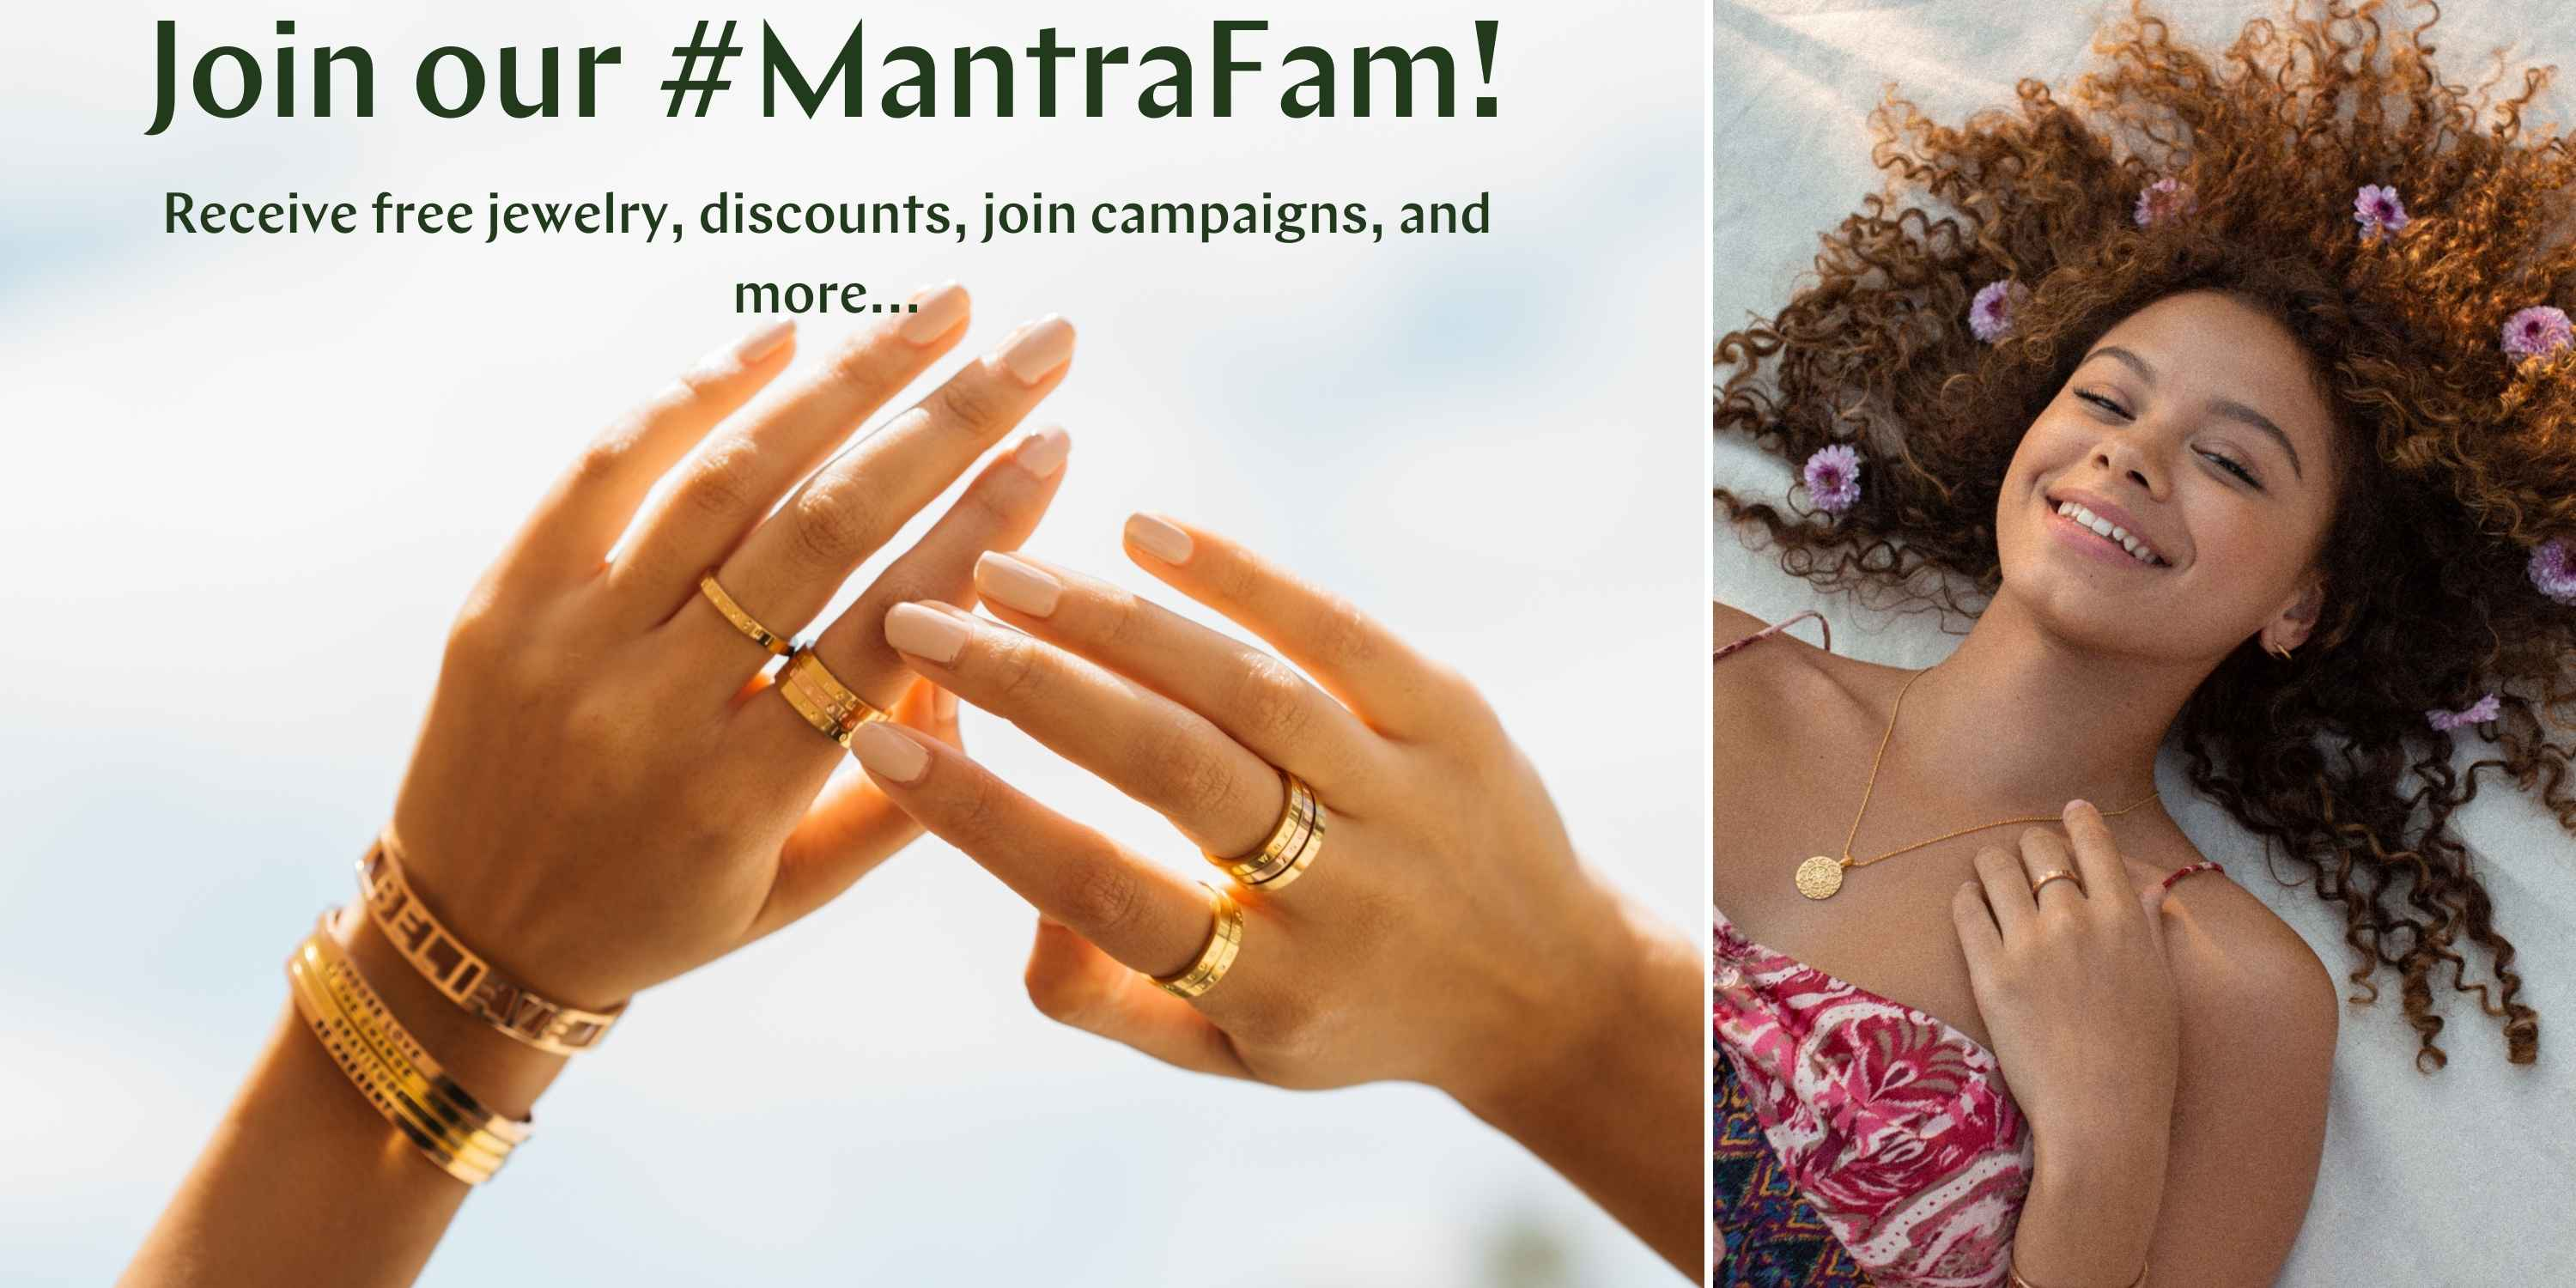 """Image of hands wearing MantraBands and model saying """"Join our #MantraFam"""" with perks of exclusive access, discounts, campaigns, and more"""